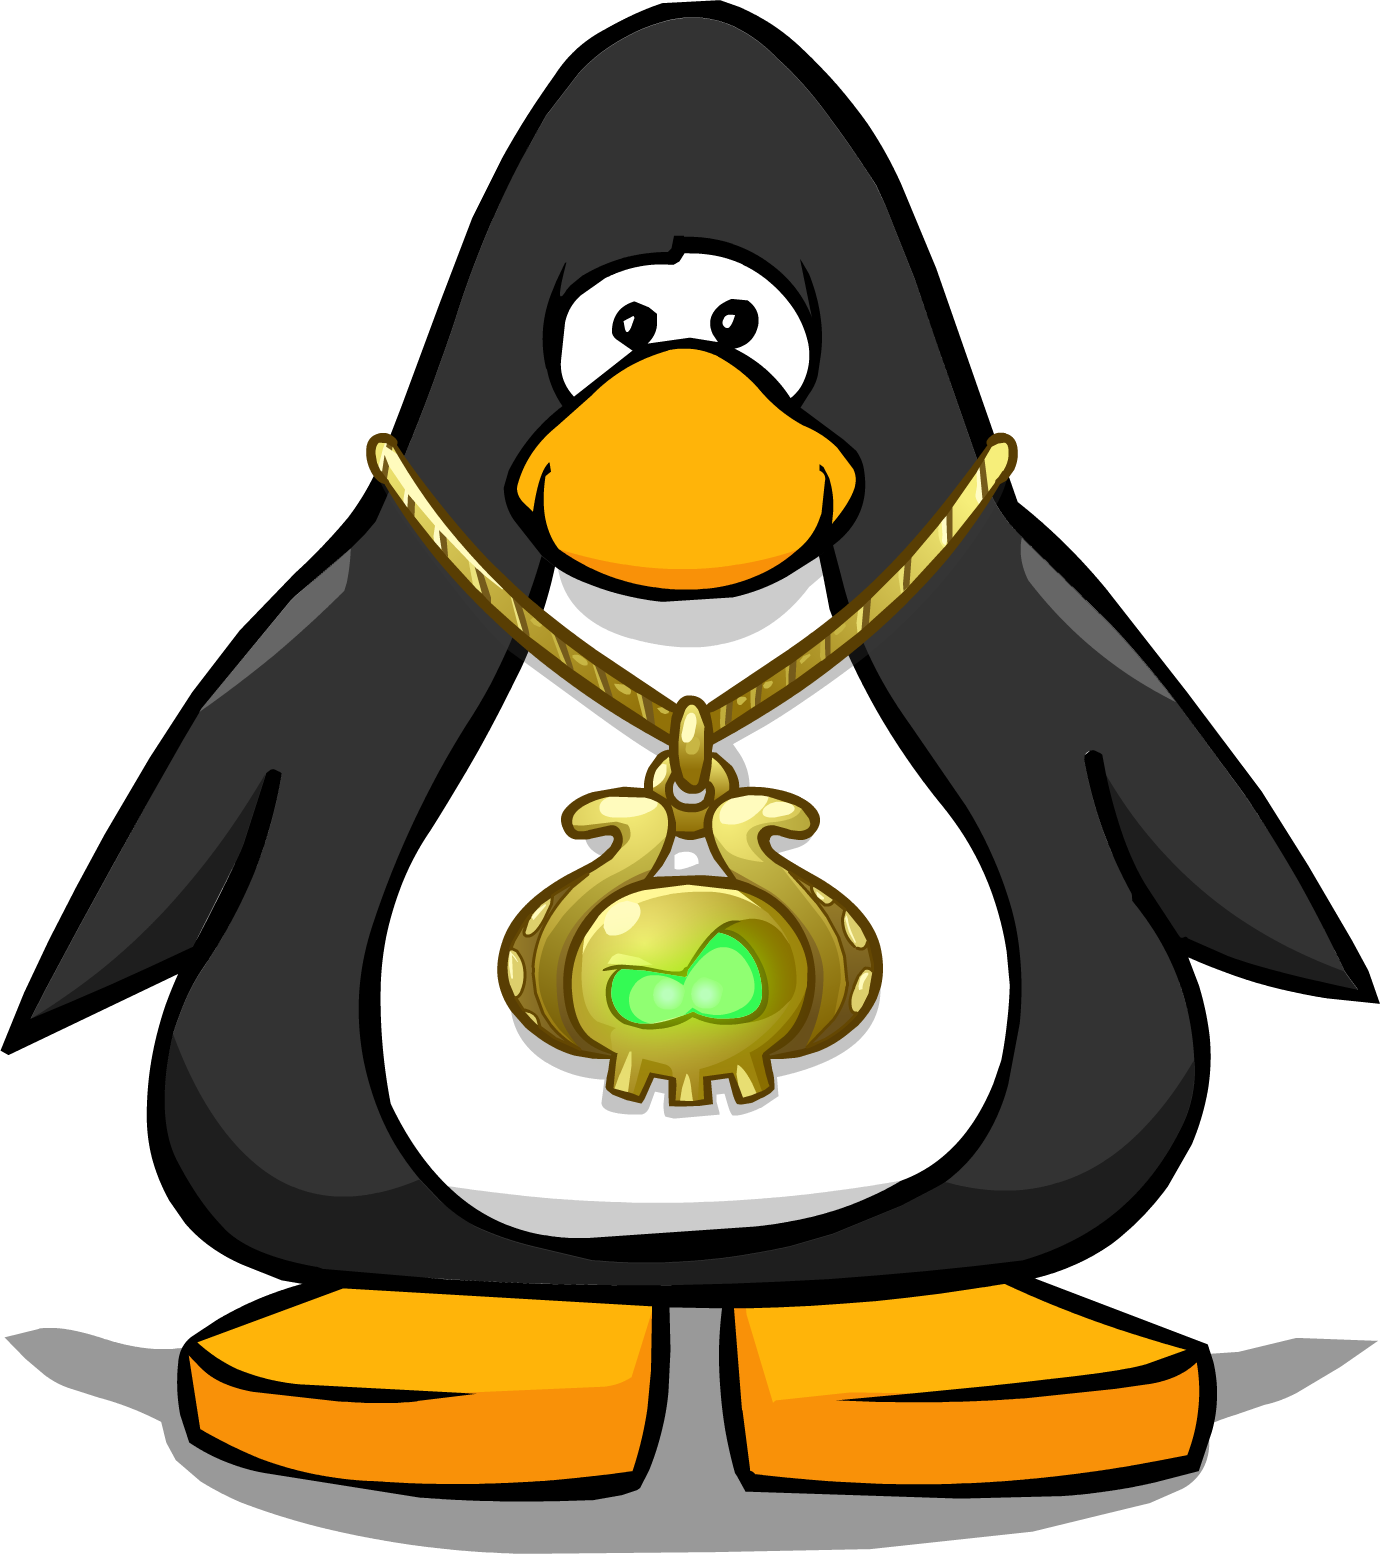 Treasure clipart sunken treasure. Image on a player